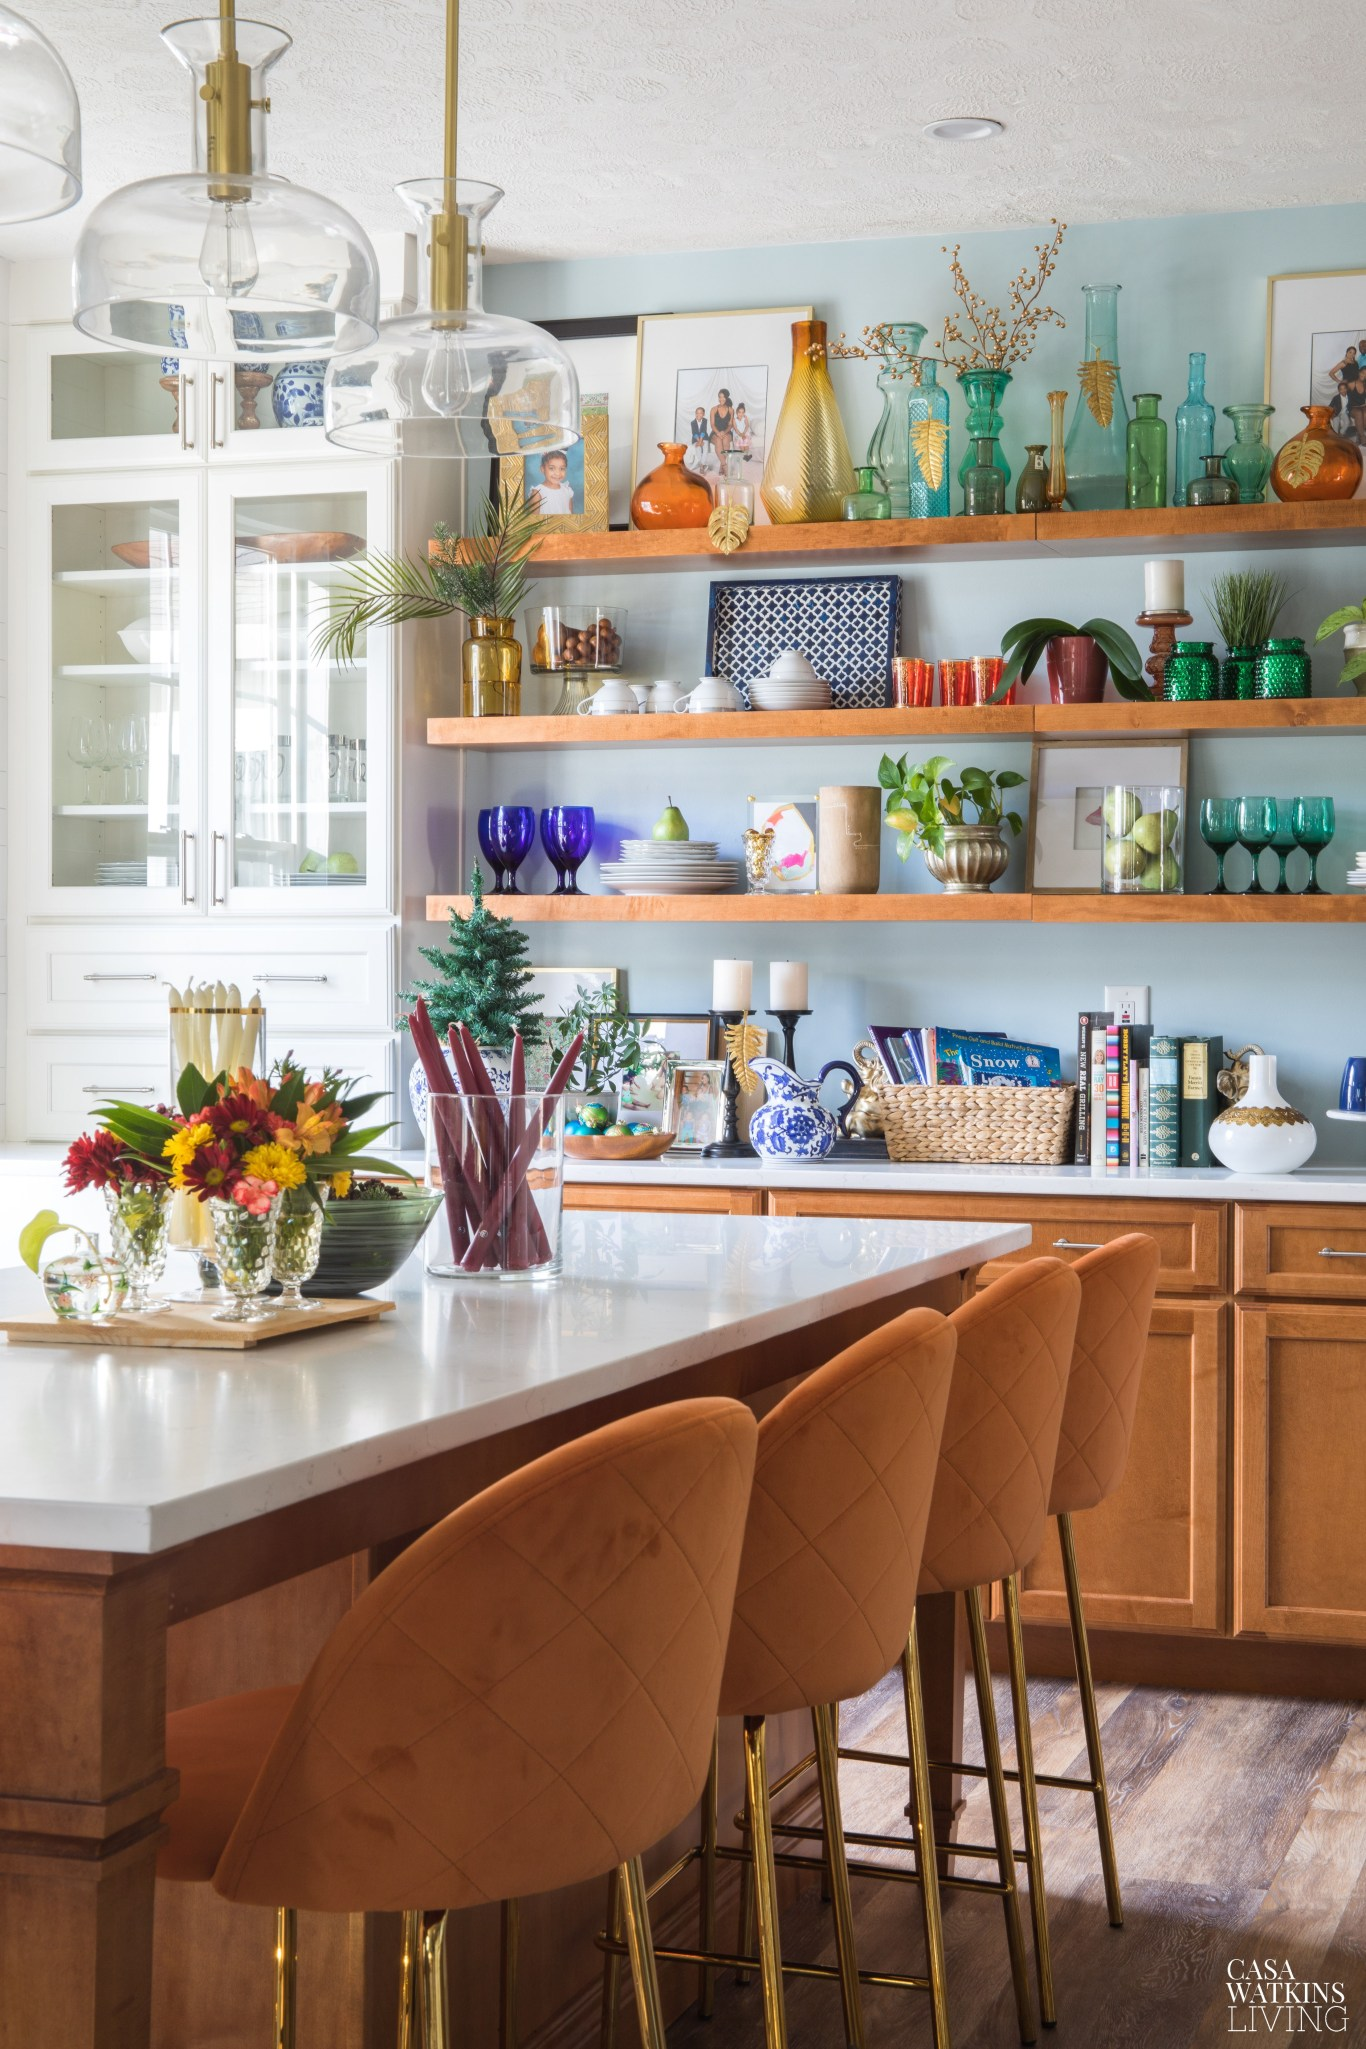 Eclectic Home Tour of Casa Watkins Living - tour this colorful home full of personality kellyelko.com #kitchen #kitchendecor #bohodecor #thrifted #thrifty #collections #vintagedecor #vintagemodern #kitchenisland #openshelves